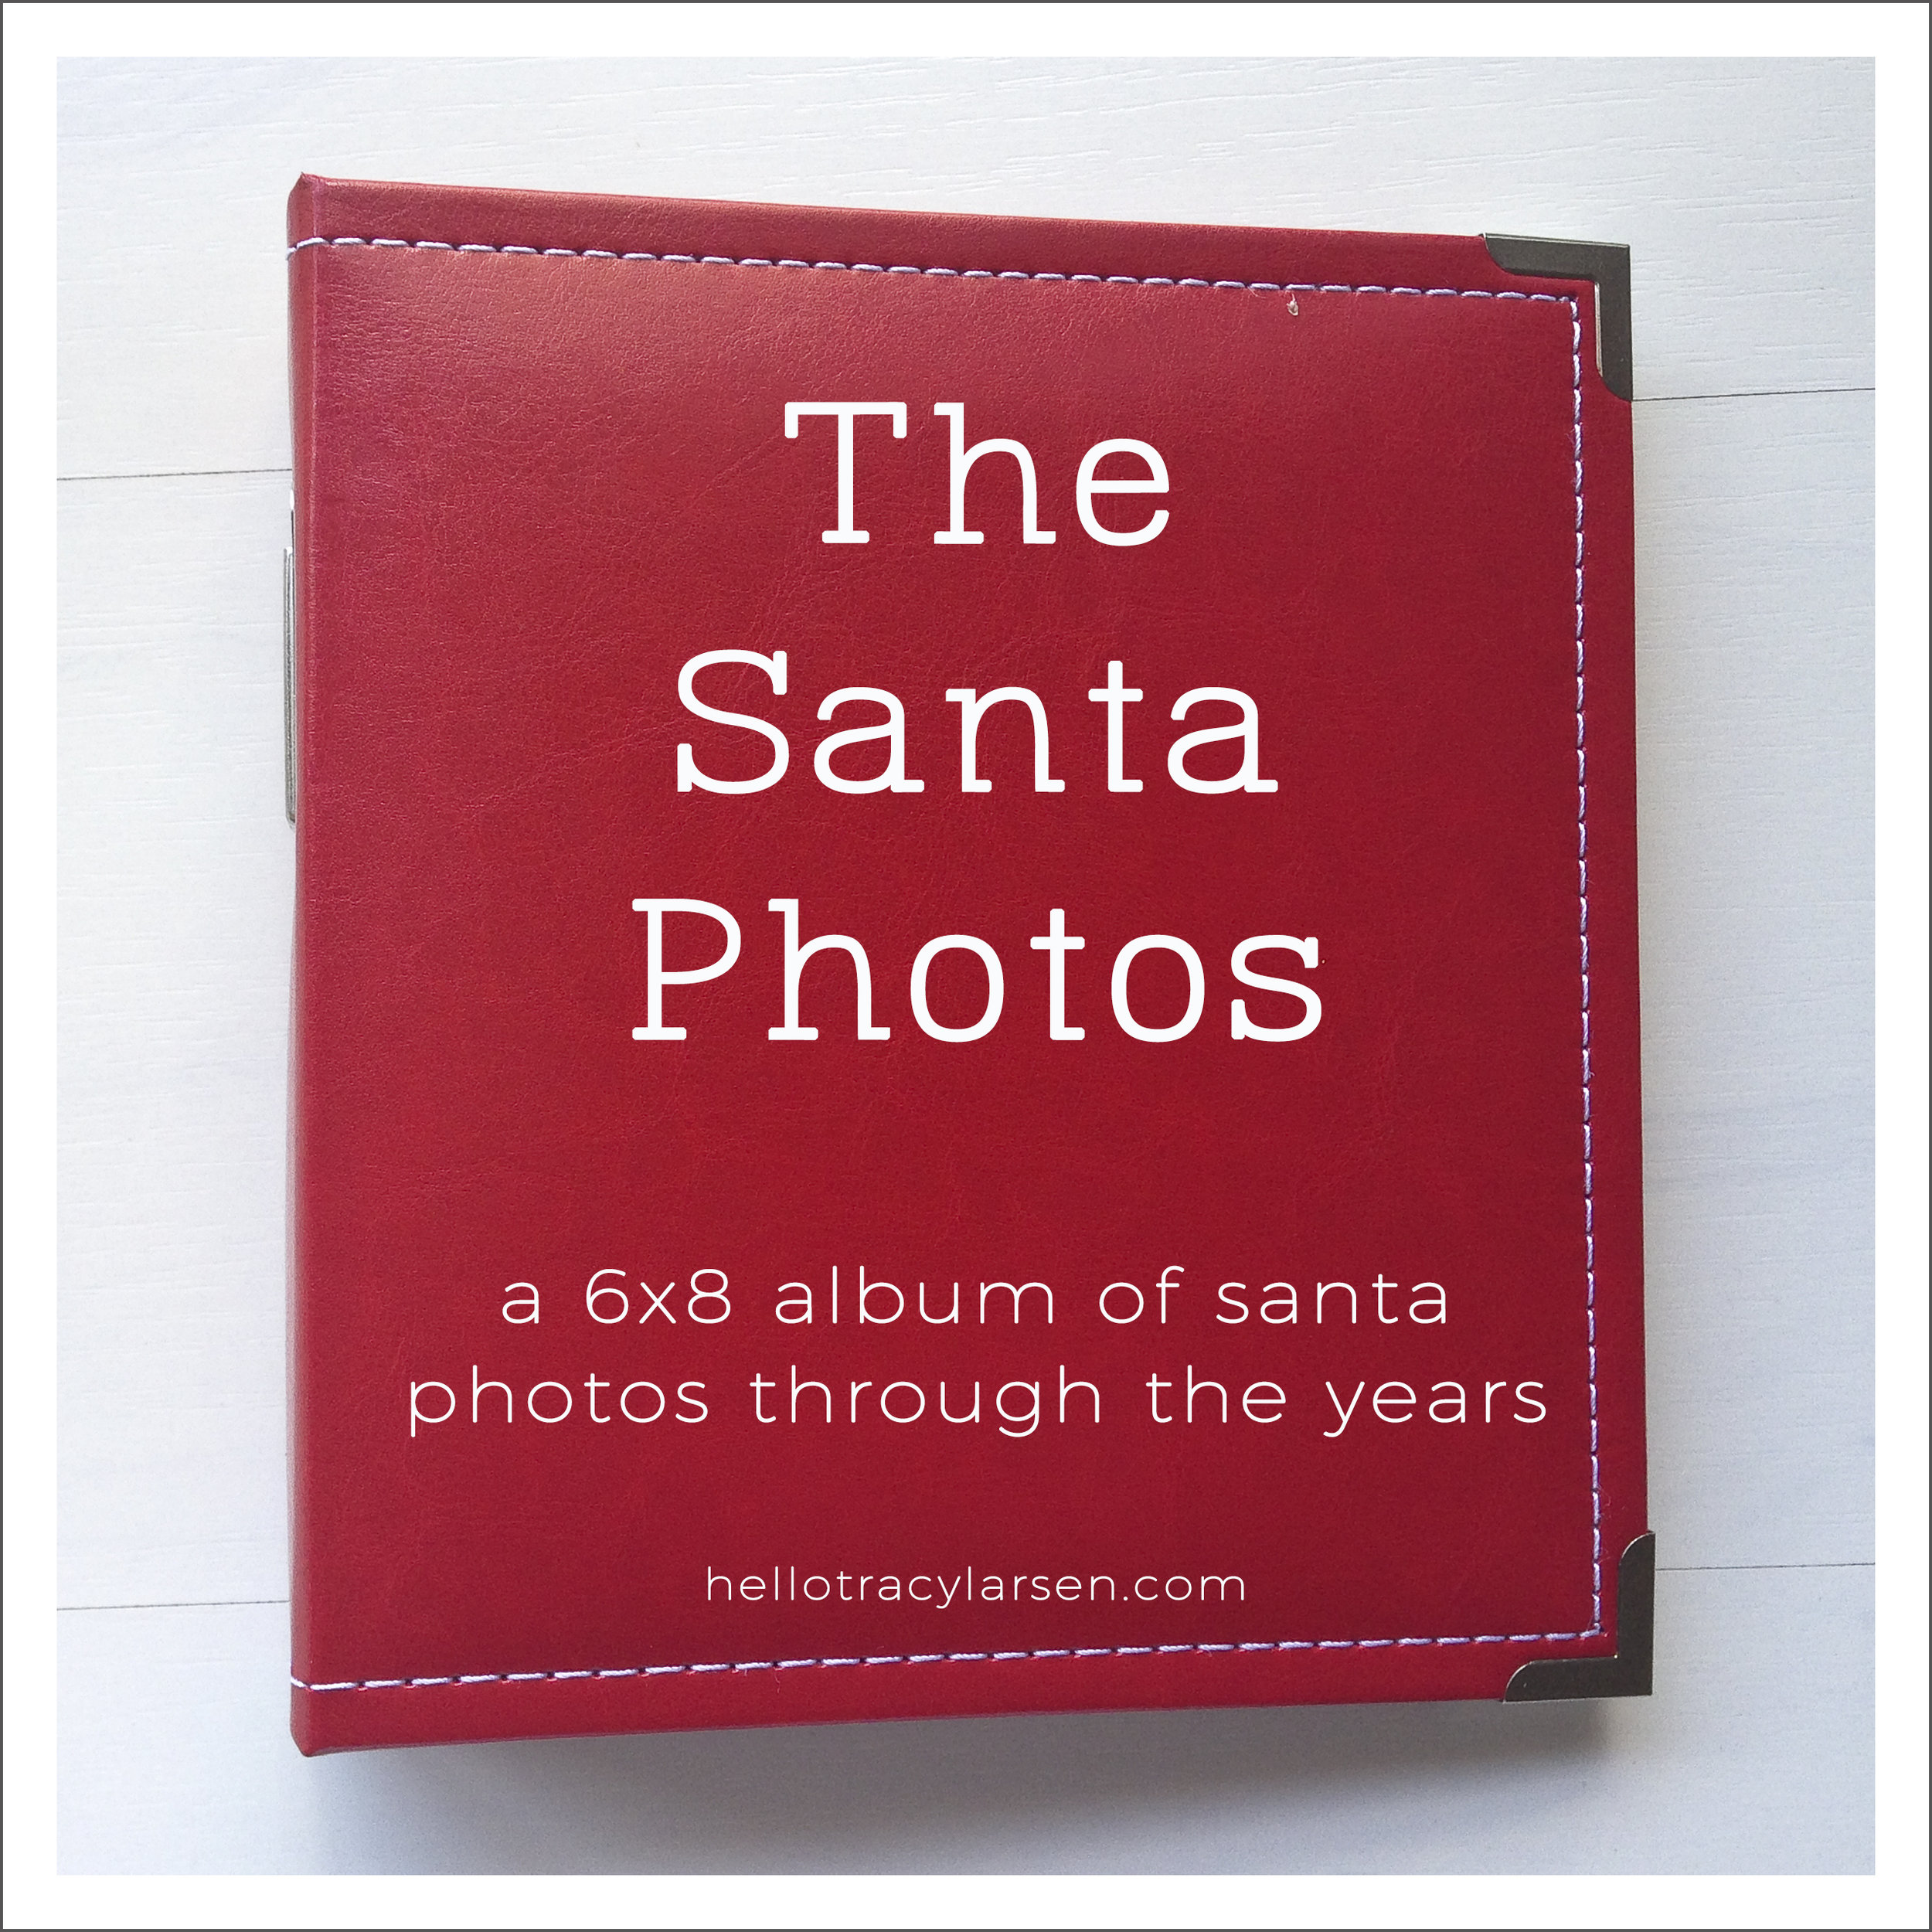 the santa photos - simply white life pages 6x8 templates - digital project life  >>>  hellotracylarsen.com